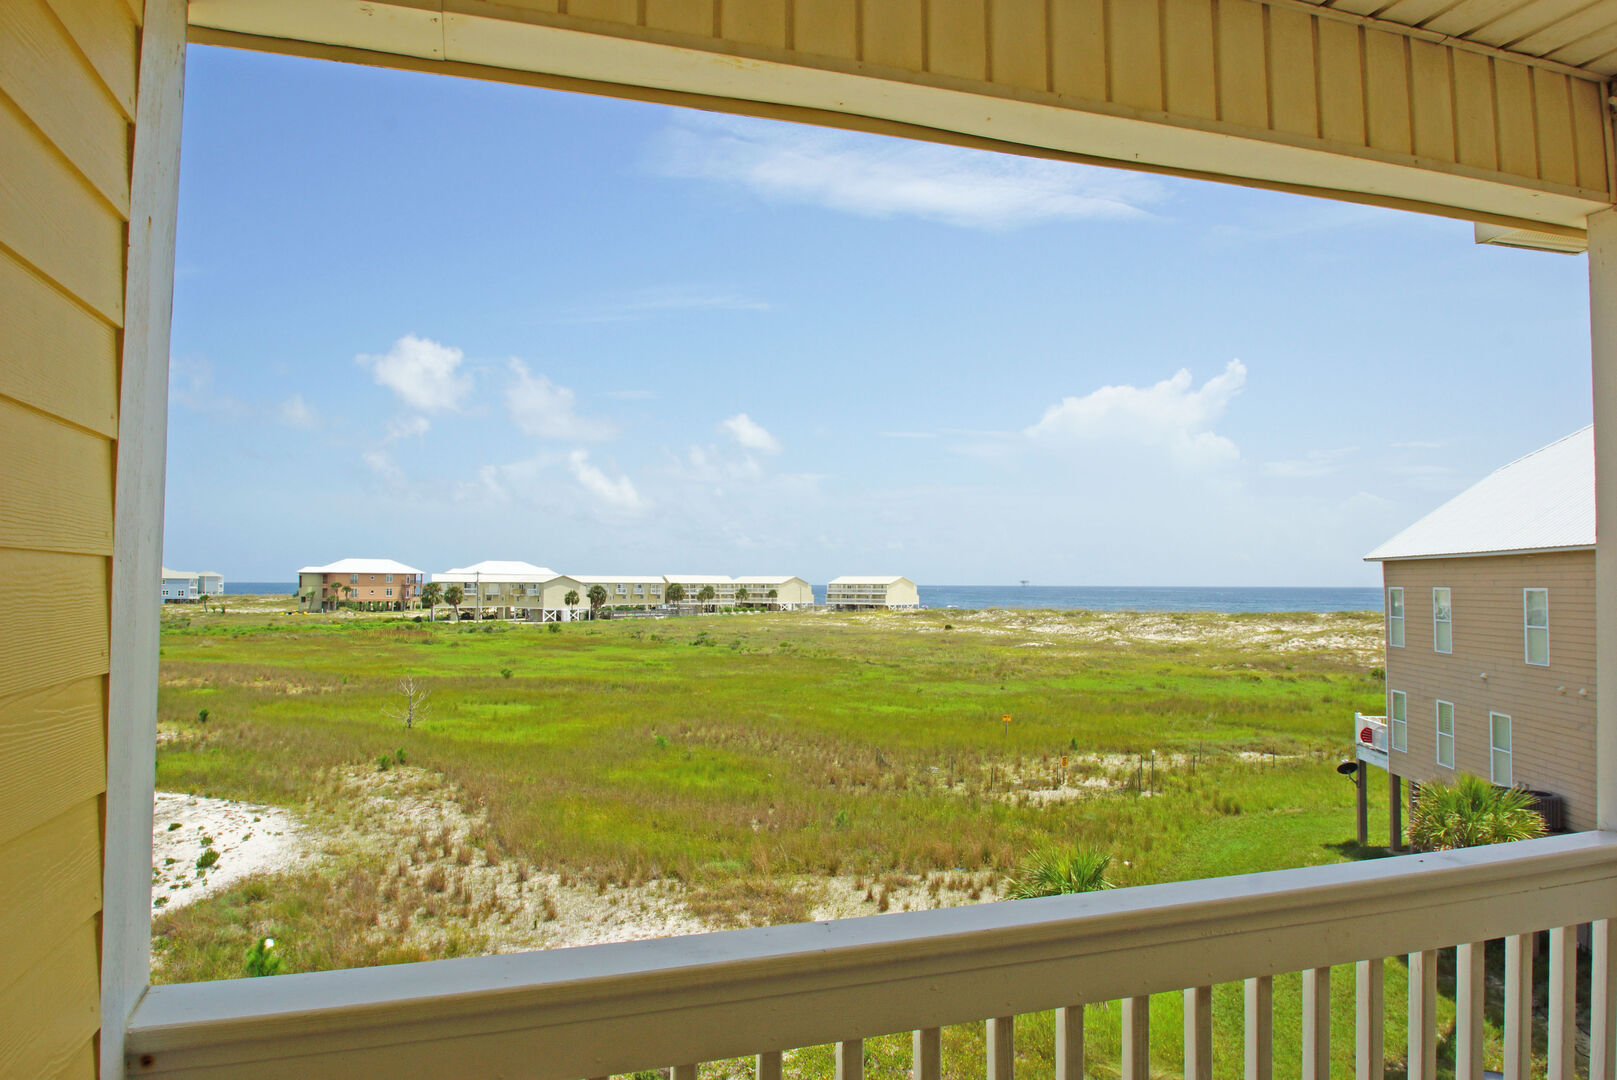 Enjoy Stunning Views From Vacation Home in Gulf Shores.